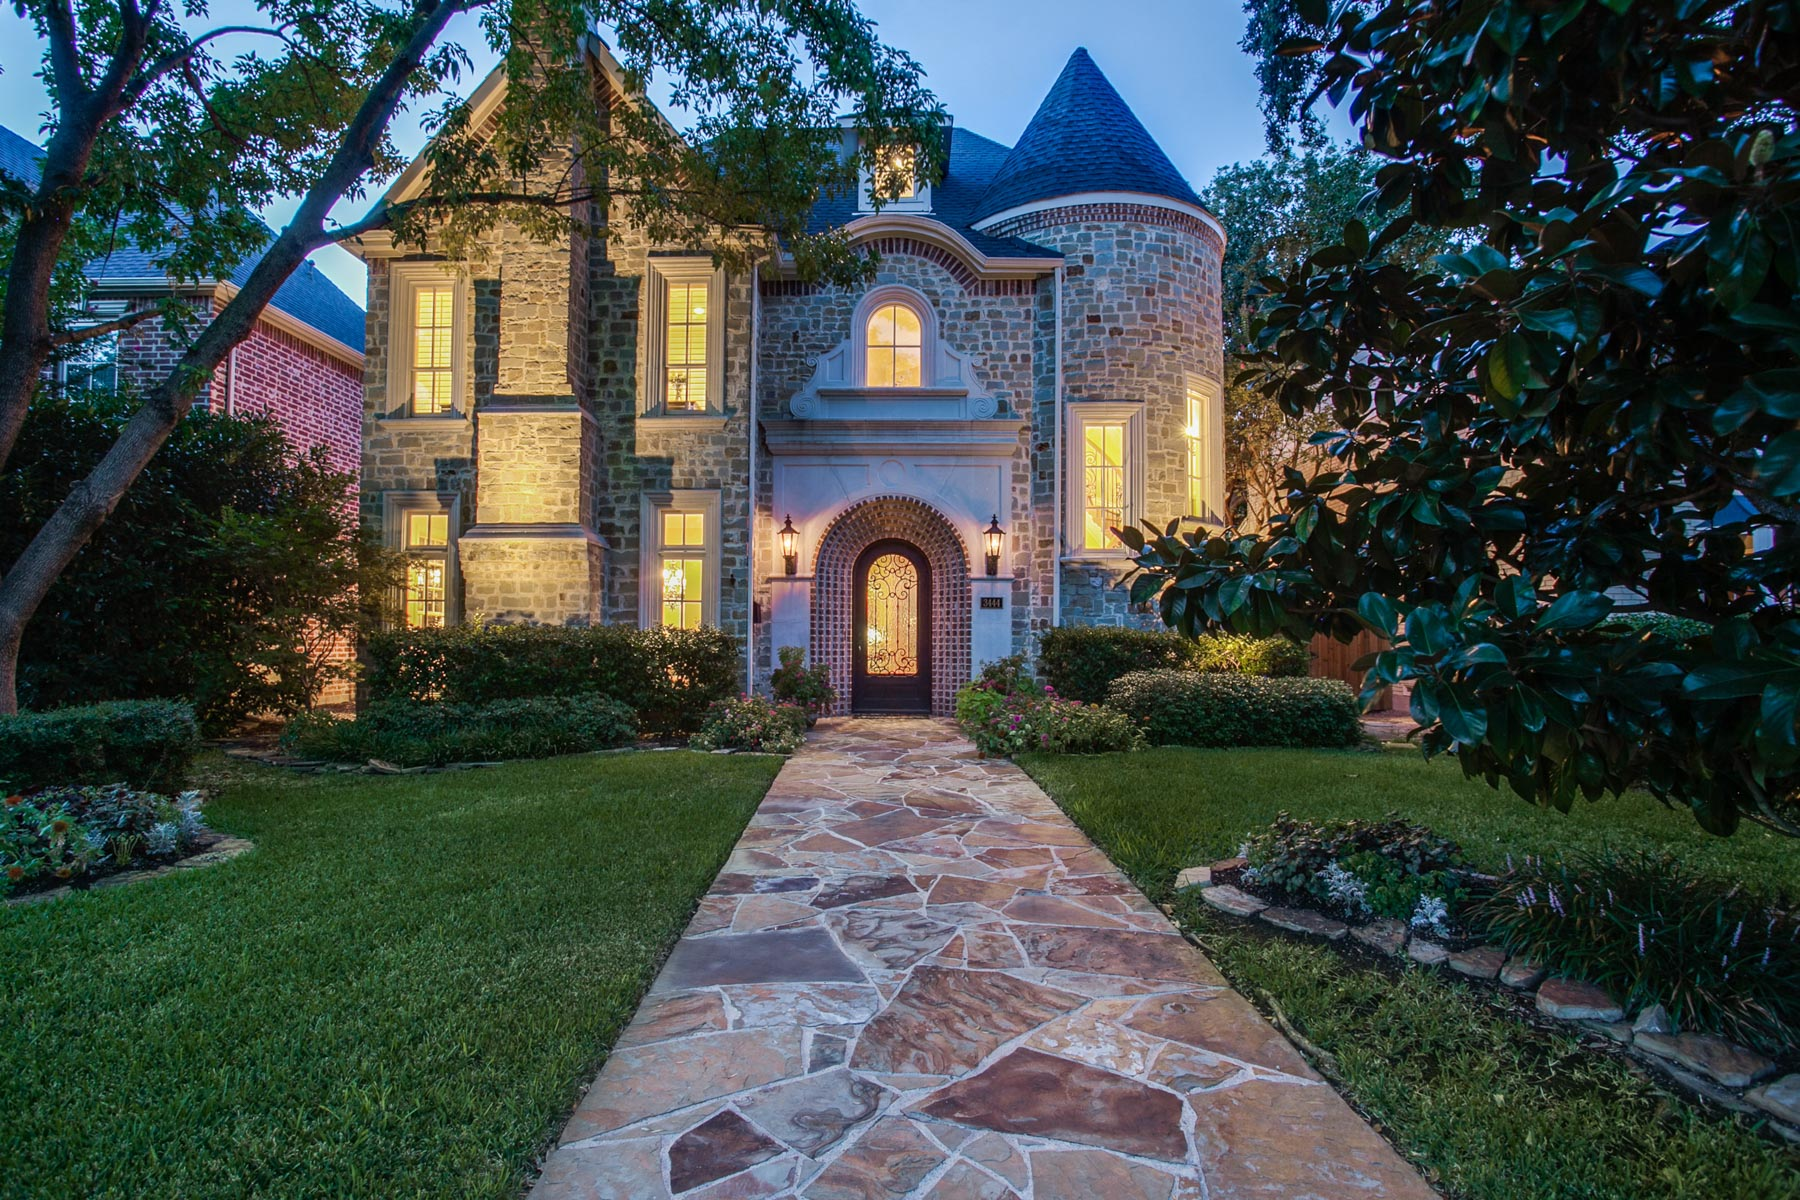 Single Family Home for Sale at Family Home in Exceptional Location 3444 Amherst Avenue Dallas, Texas 75225 United States